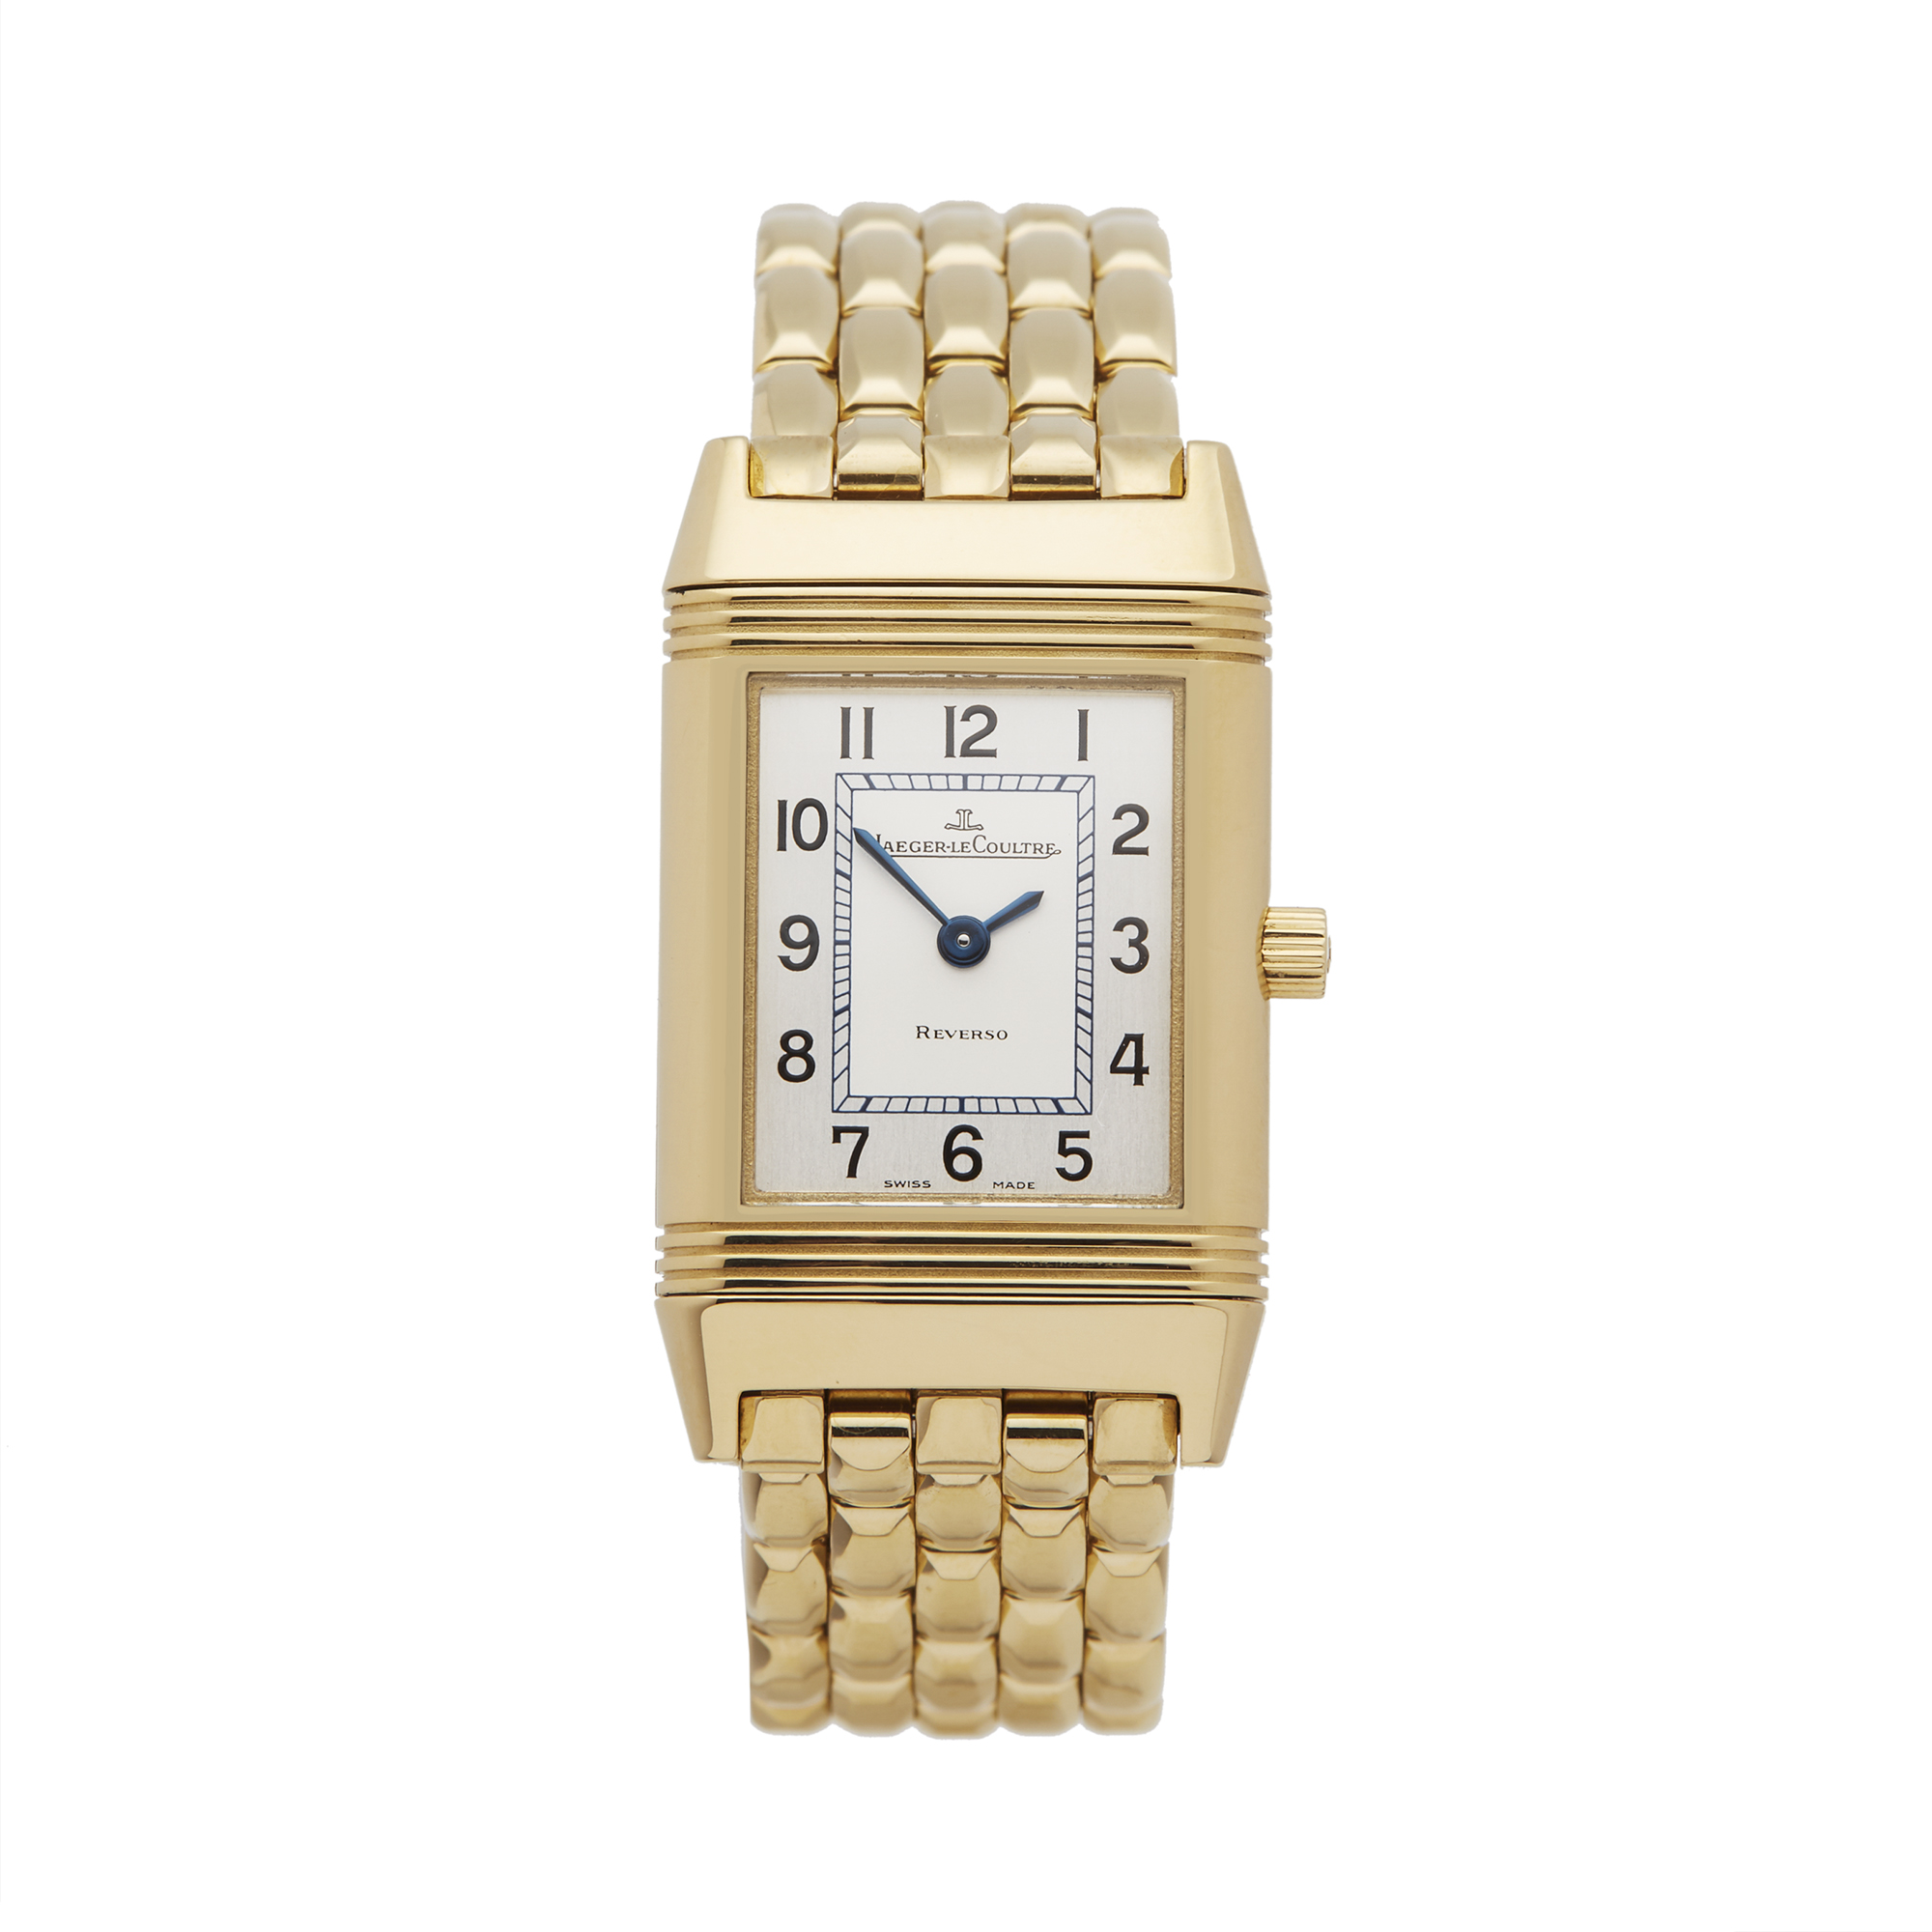 e426db8cfc3c JAEGER-LECOULTRE REVERSO 18K YELLOW GOLD WATCH 260.1.47 W5798